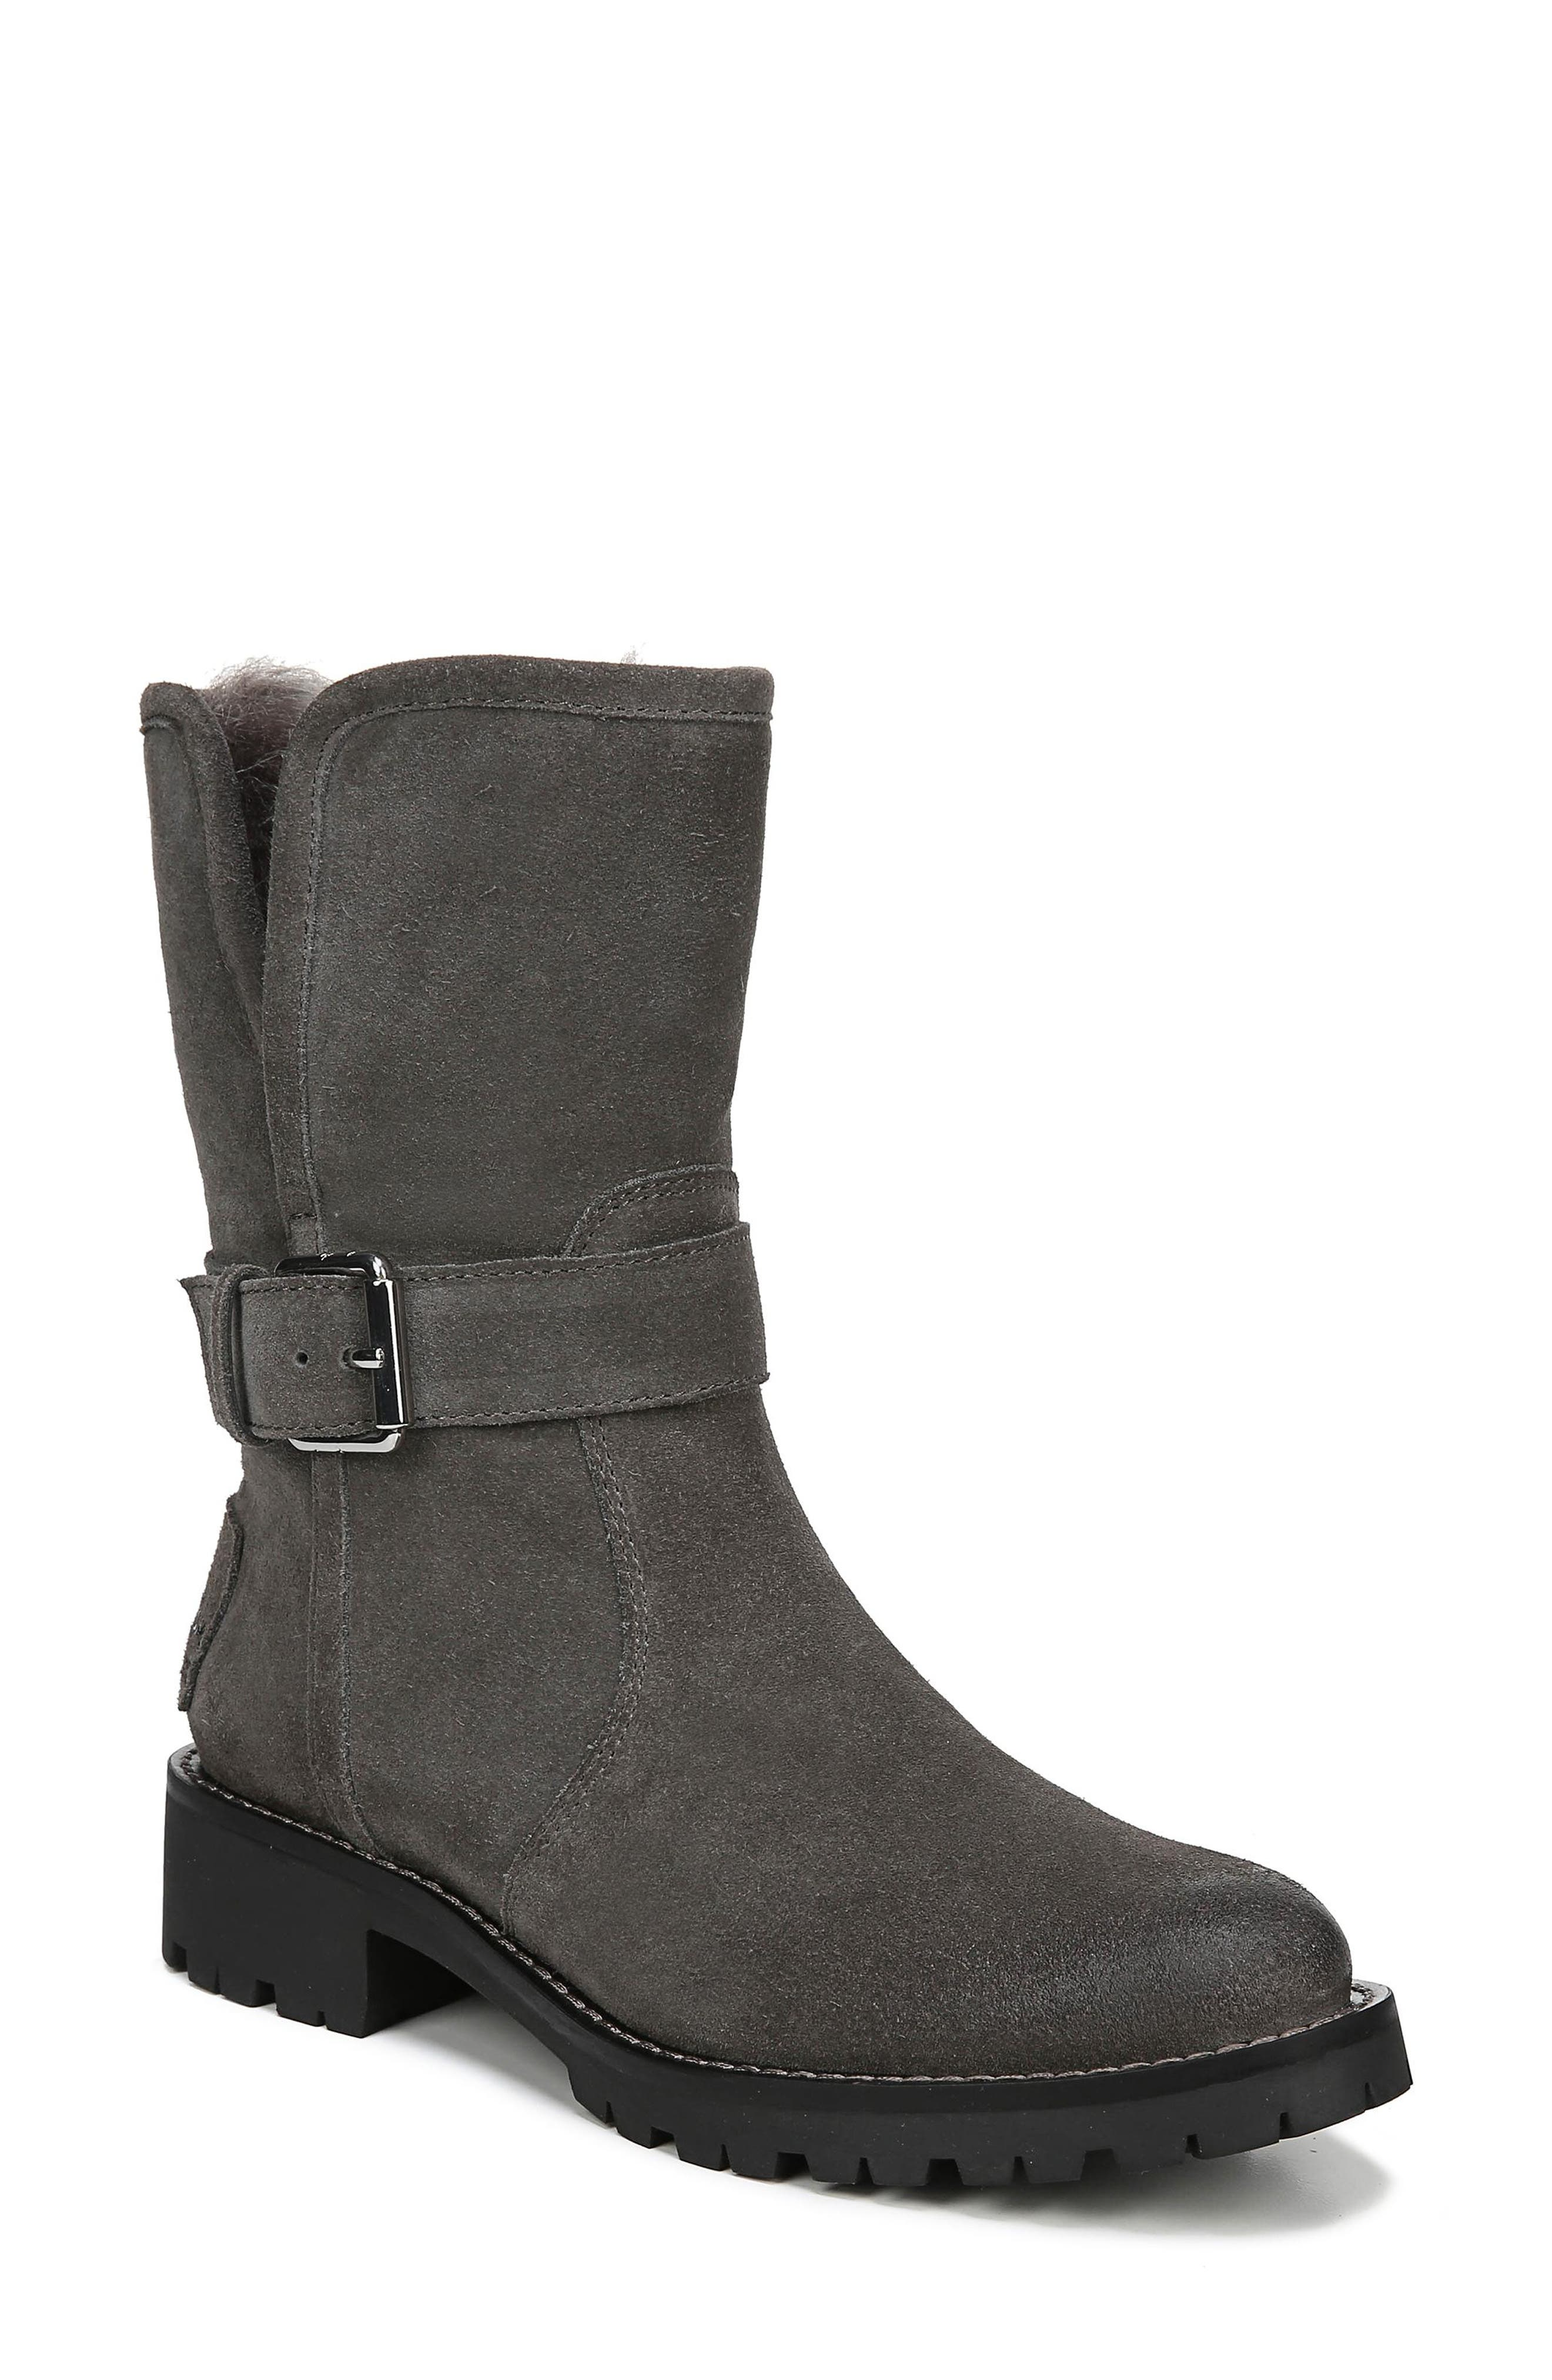 Jeanie Boot,                             Main thumbnail 1, color,                             STEEL GREY SUEDE